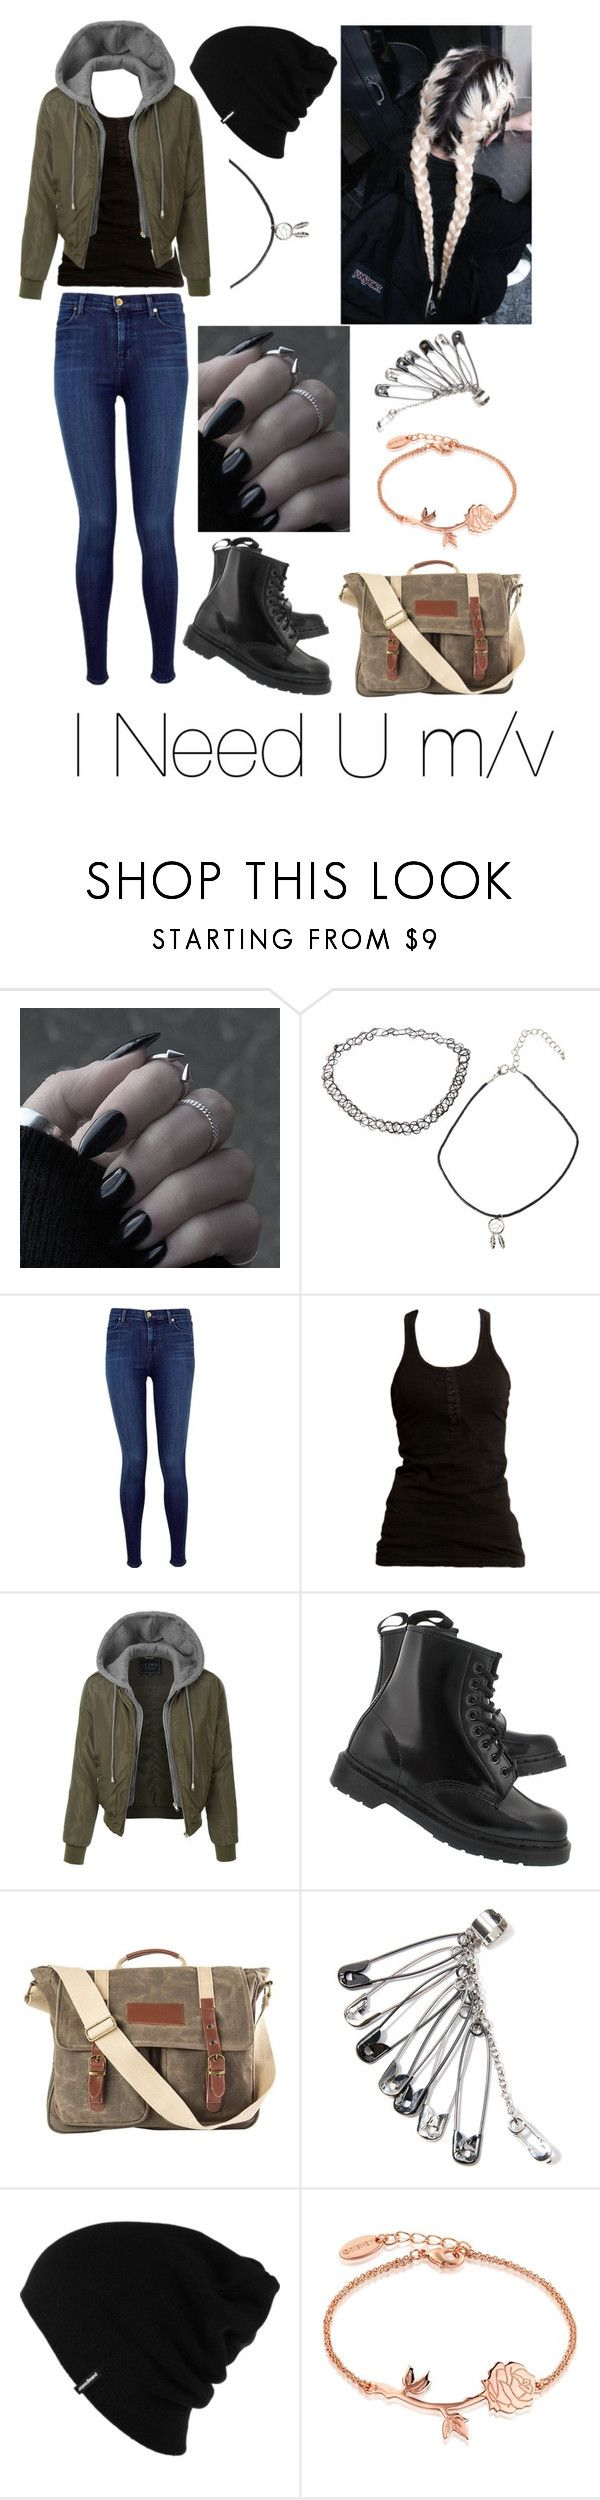 """I Need U m/v"" by trashlogic ❤ liked on Polyvore featuring Hot Topic, J Brand, Dr. Denim, LE3NO, Dr. Martens, Identity, Cathy's Concepts, Patagonia and Disney"